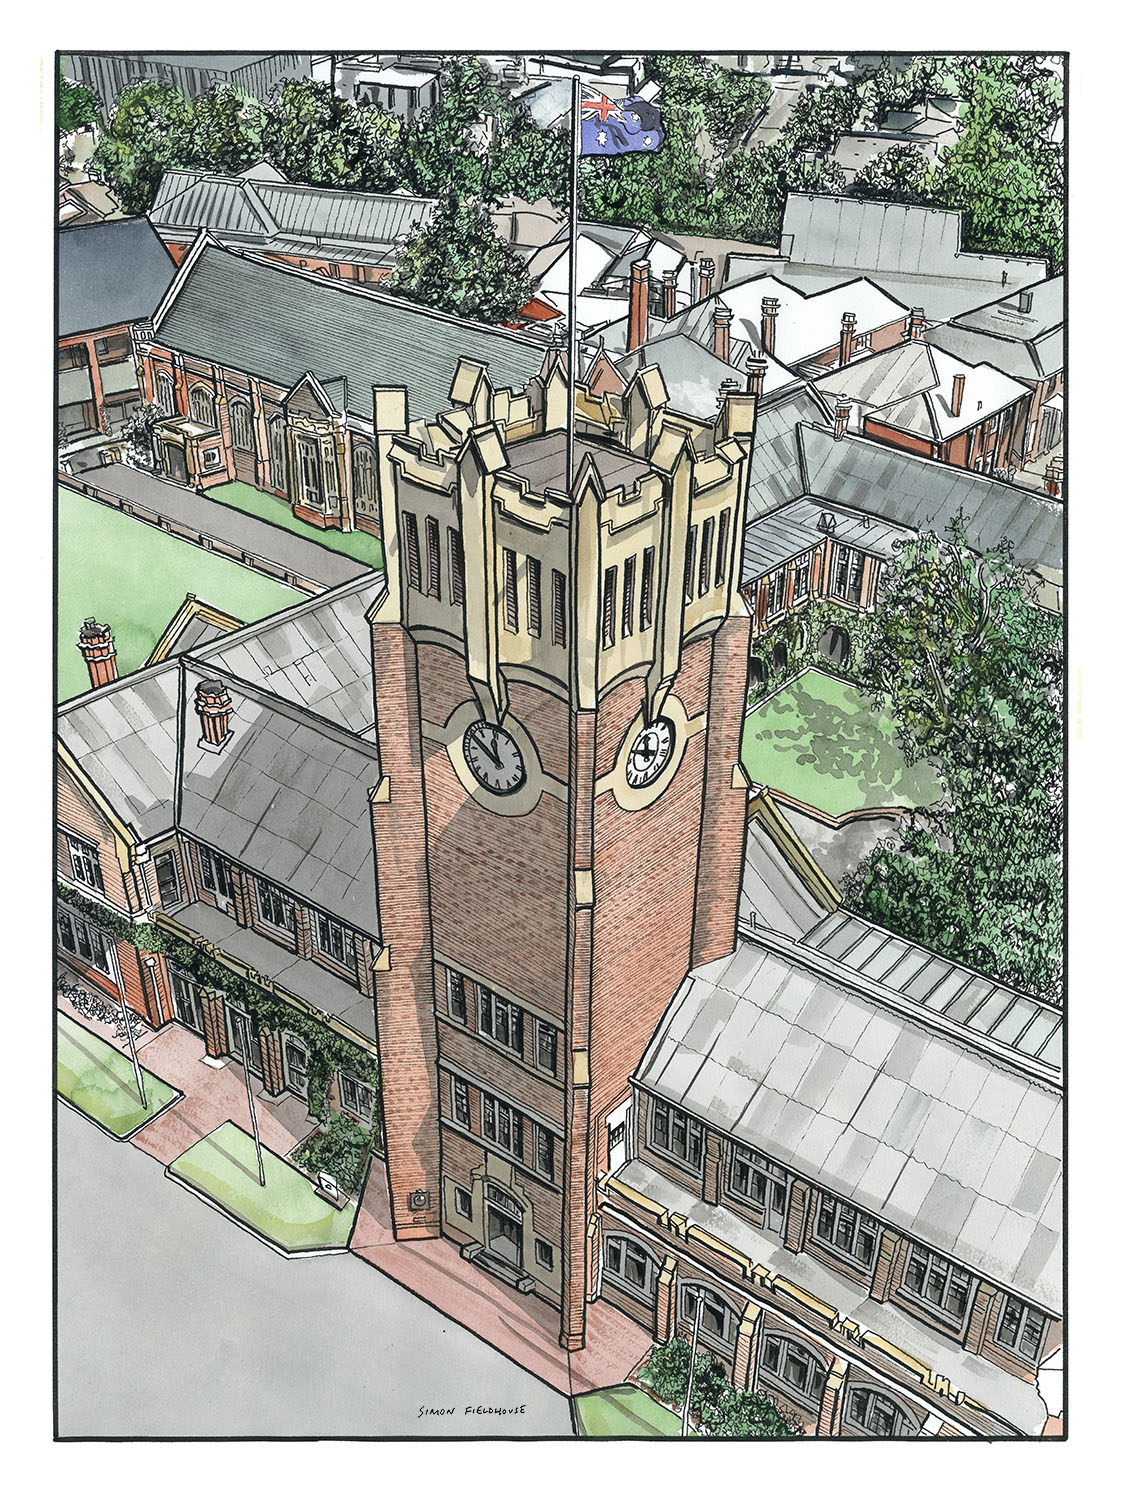 Geelong Grammar School Clocktower